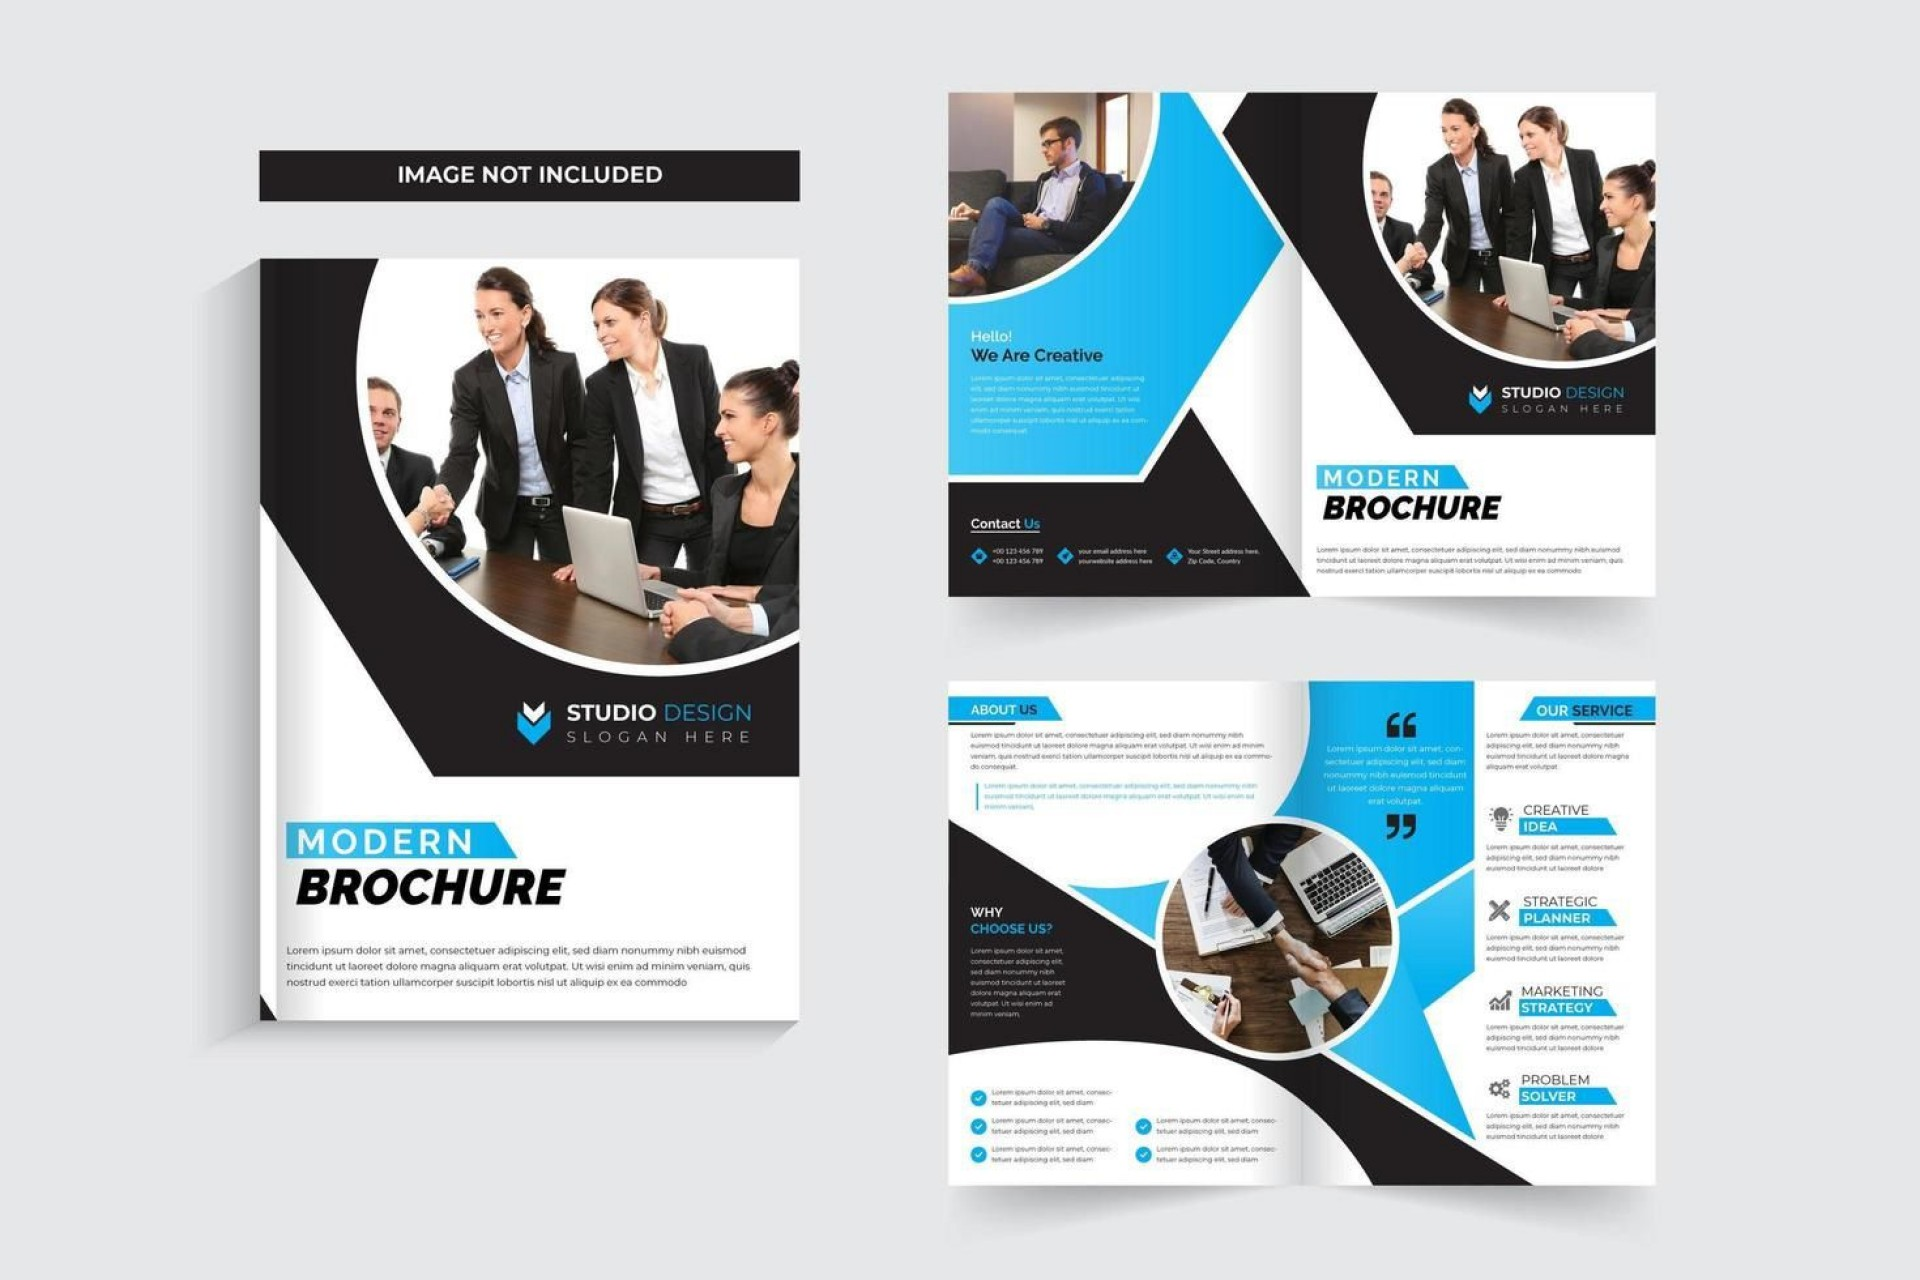 006 Wonderful Brochure Template Free Download Image  Microsoft Publisher Corporate Psd For Adobe Illustrator1920